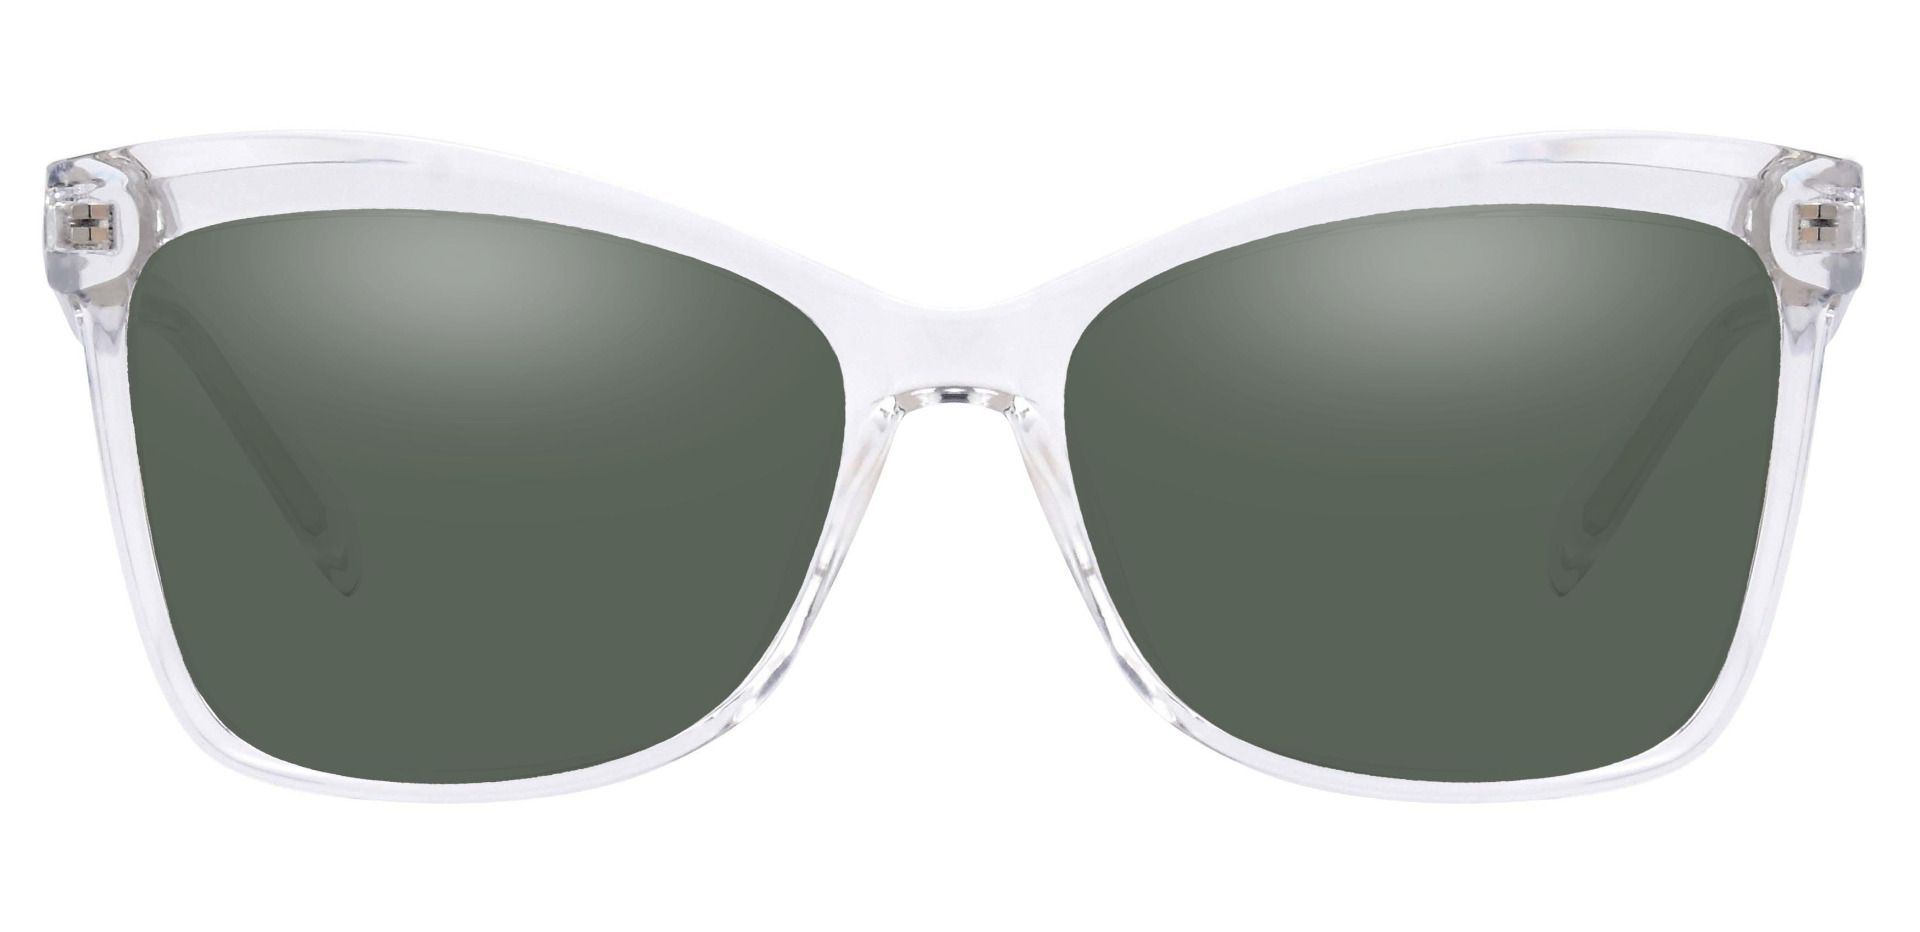 Lexi Cat Eye Lined Bifocal Sunglasses - Clear Frame With Green Lenses